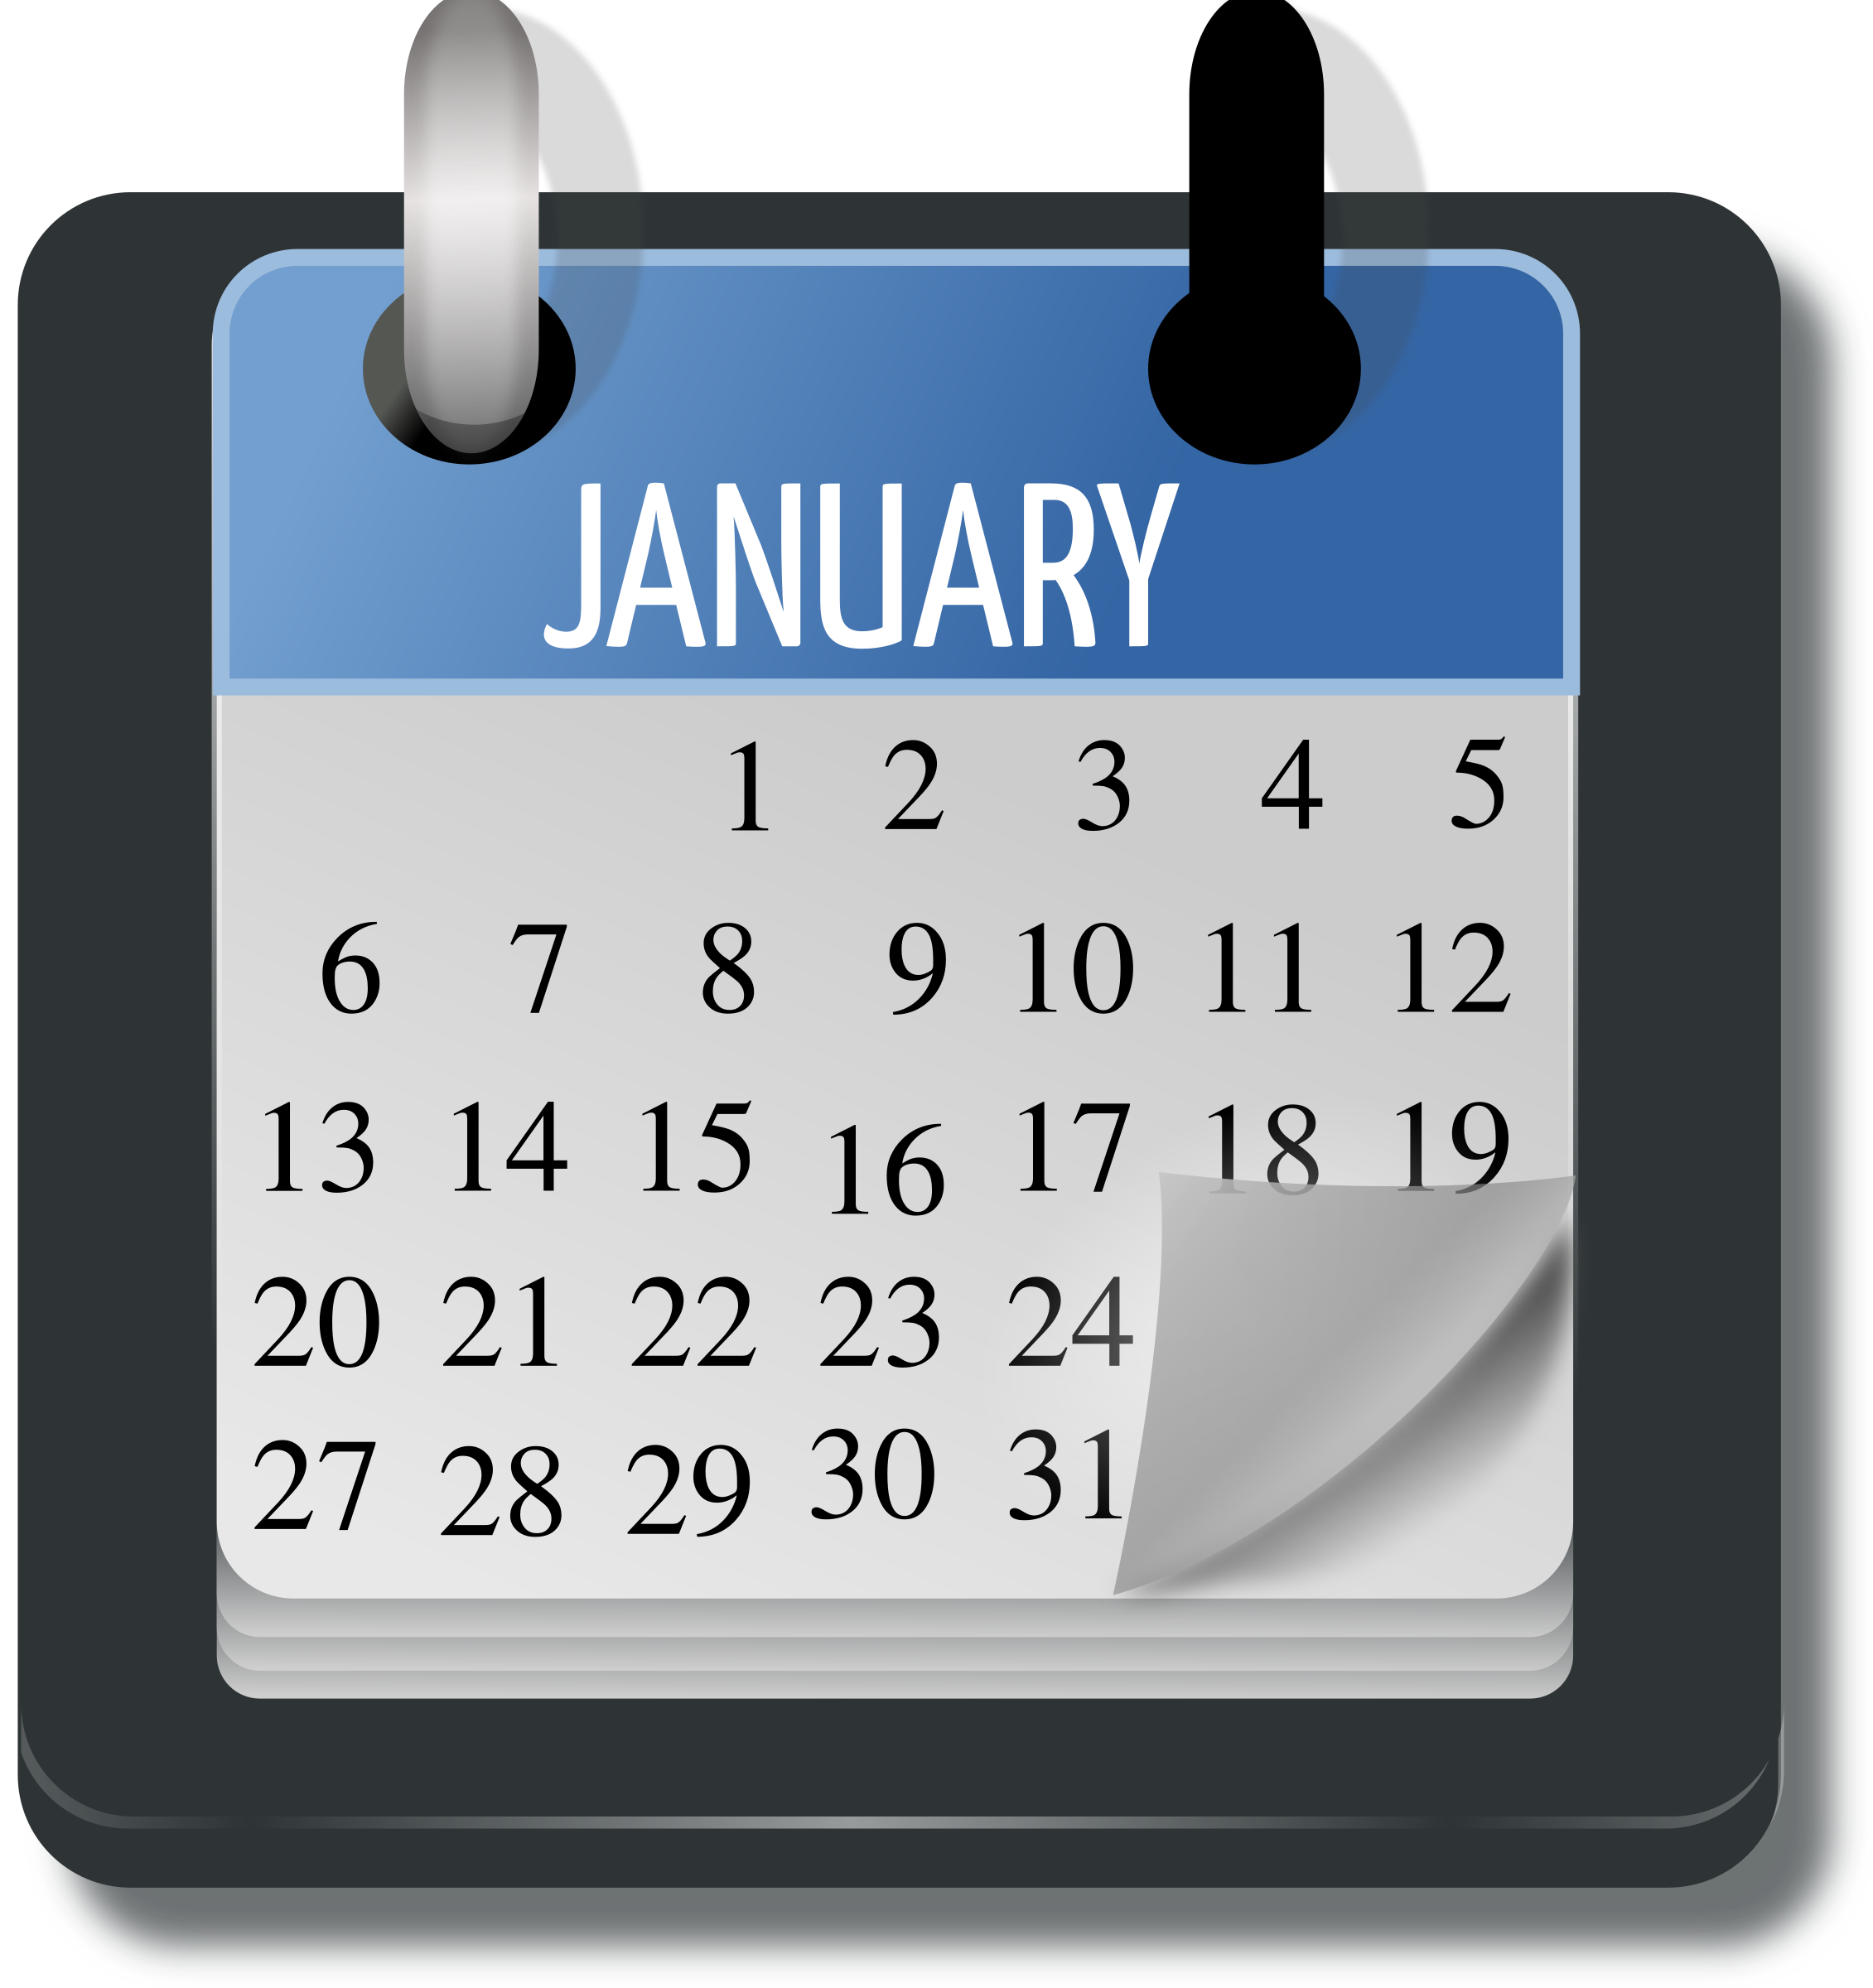 Calendar Vector Art : January calendar vector art image free stock photo